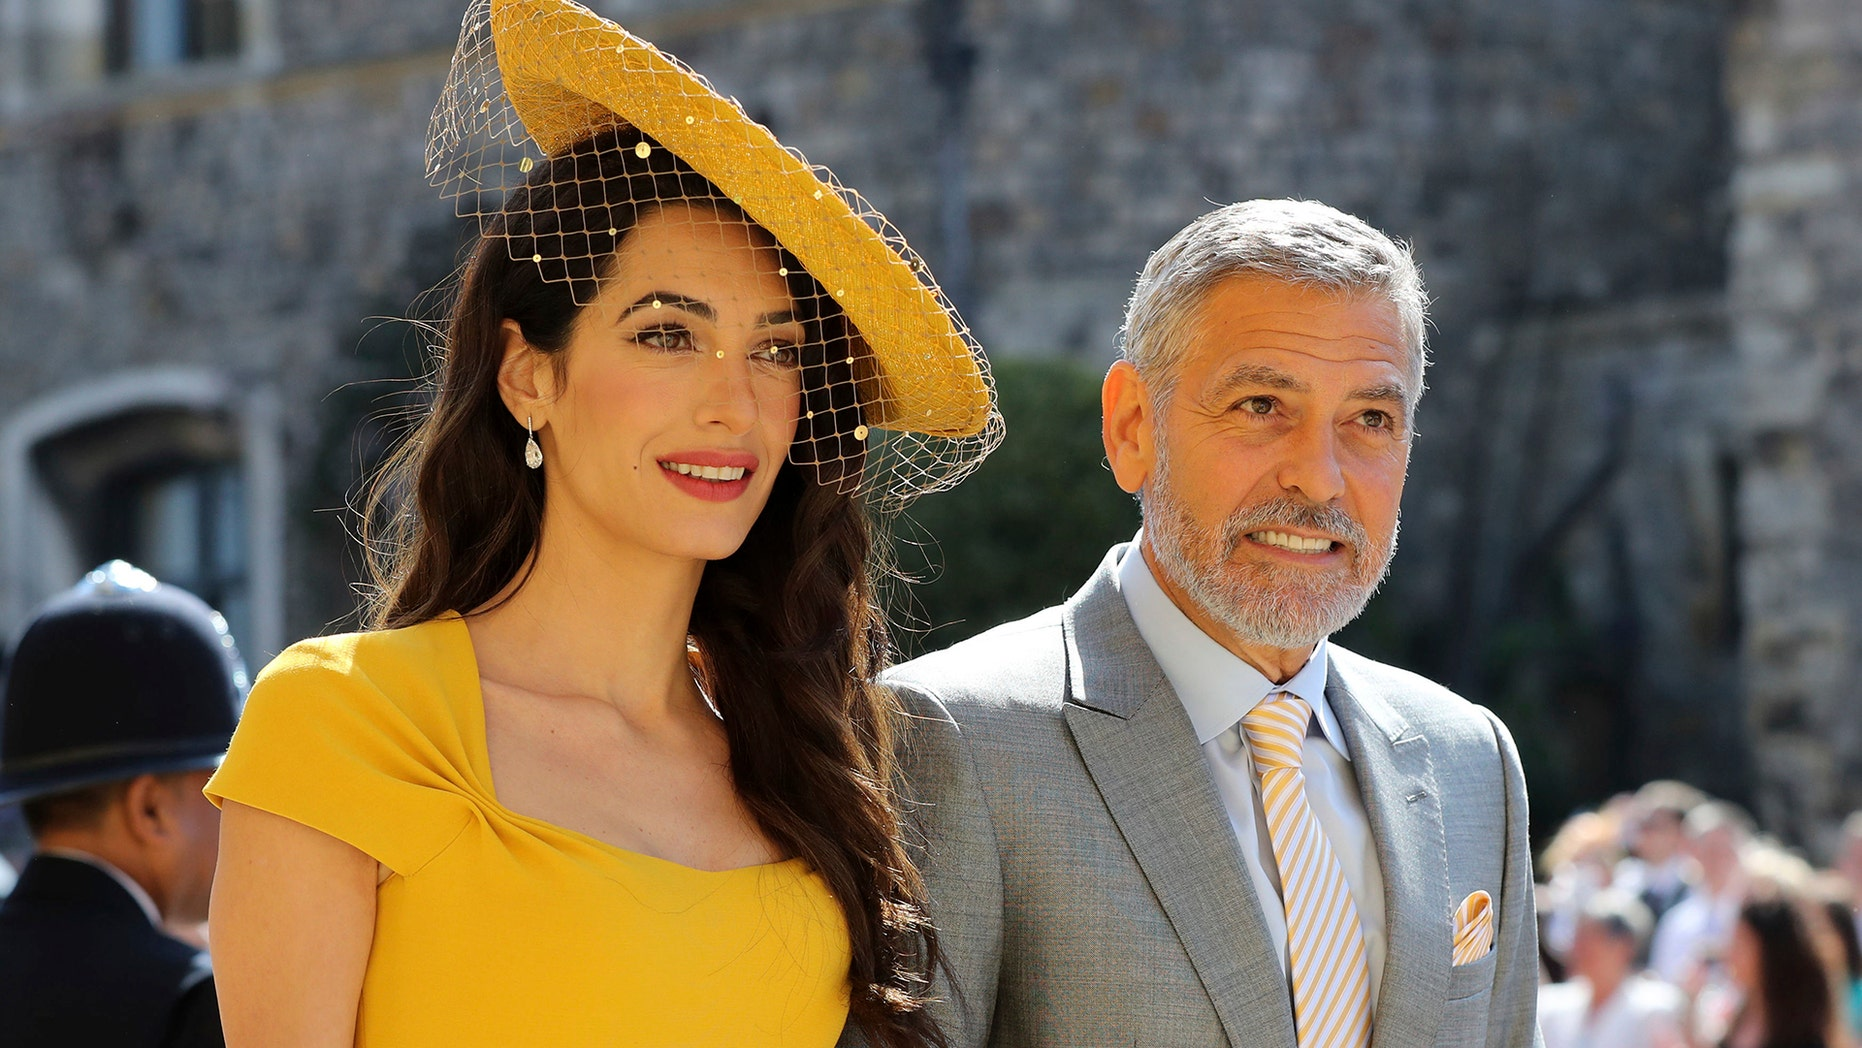 Amal Clooney and George Clooney attended Prince Harry and Meghan Markle at St. George's Chapel back in May, but did not make it to Princess Eugenie's October nuptials. (Gareth Fuller/pool photo via AP)<br>